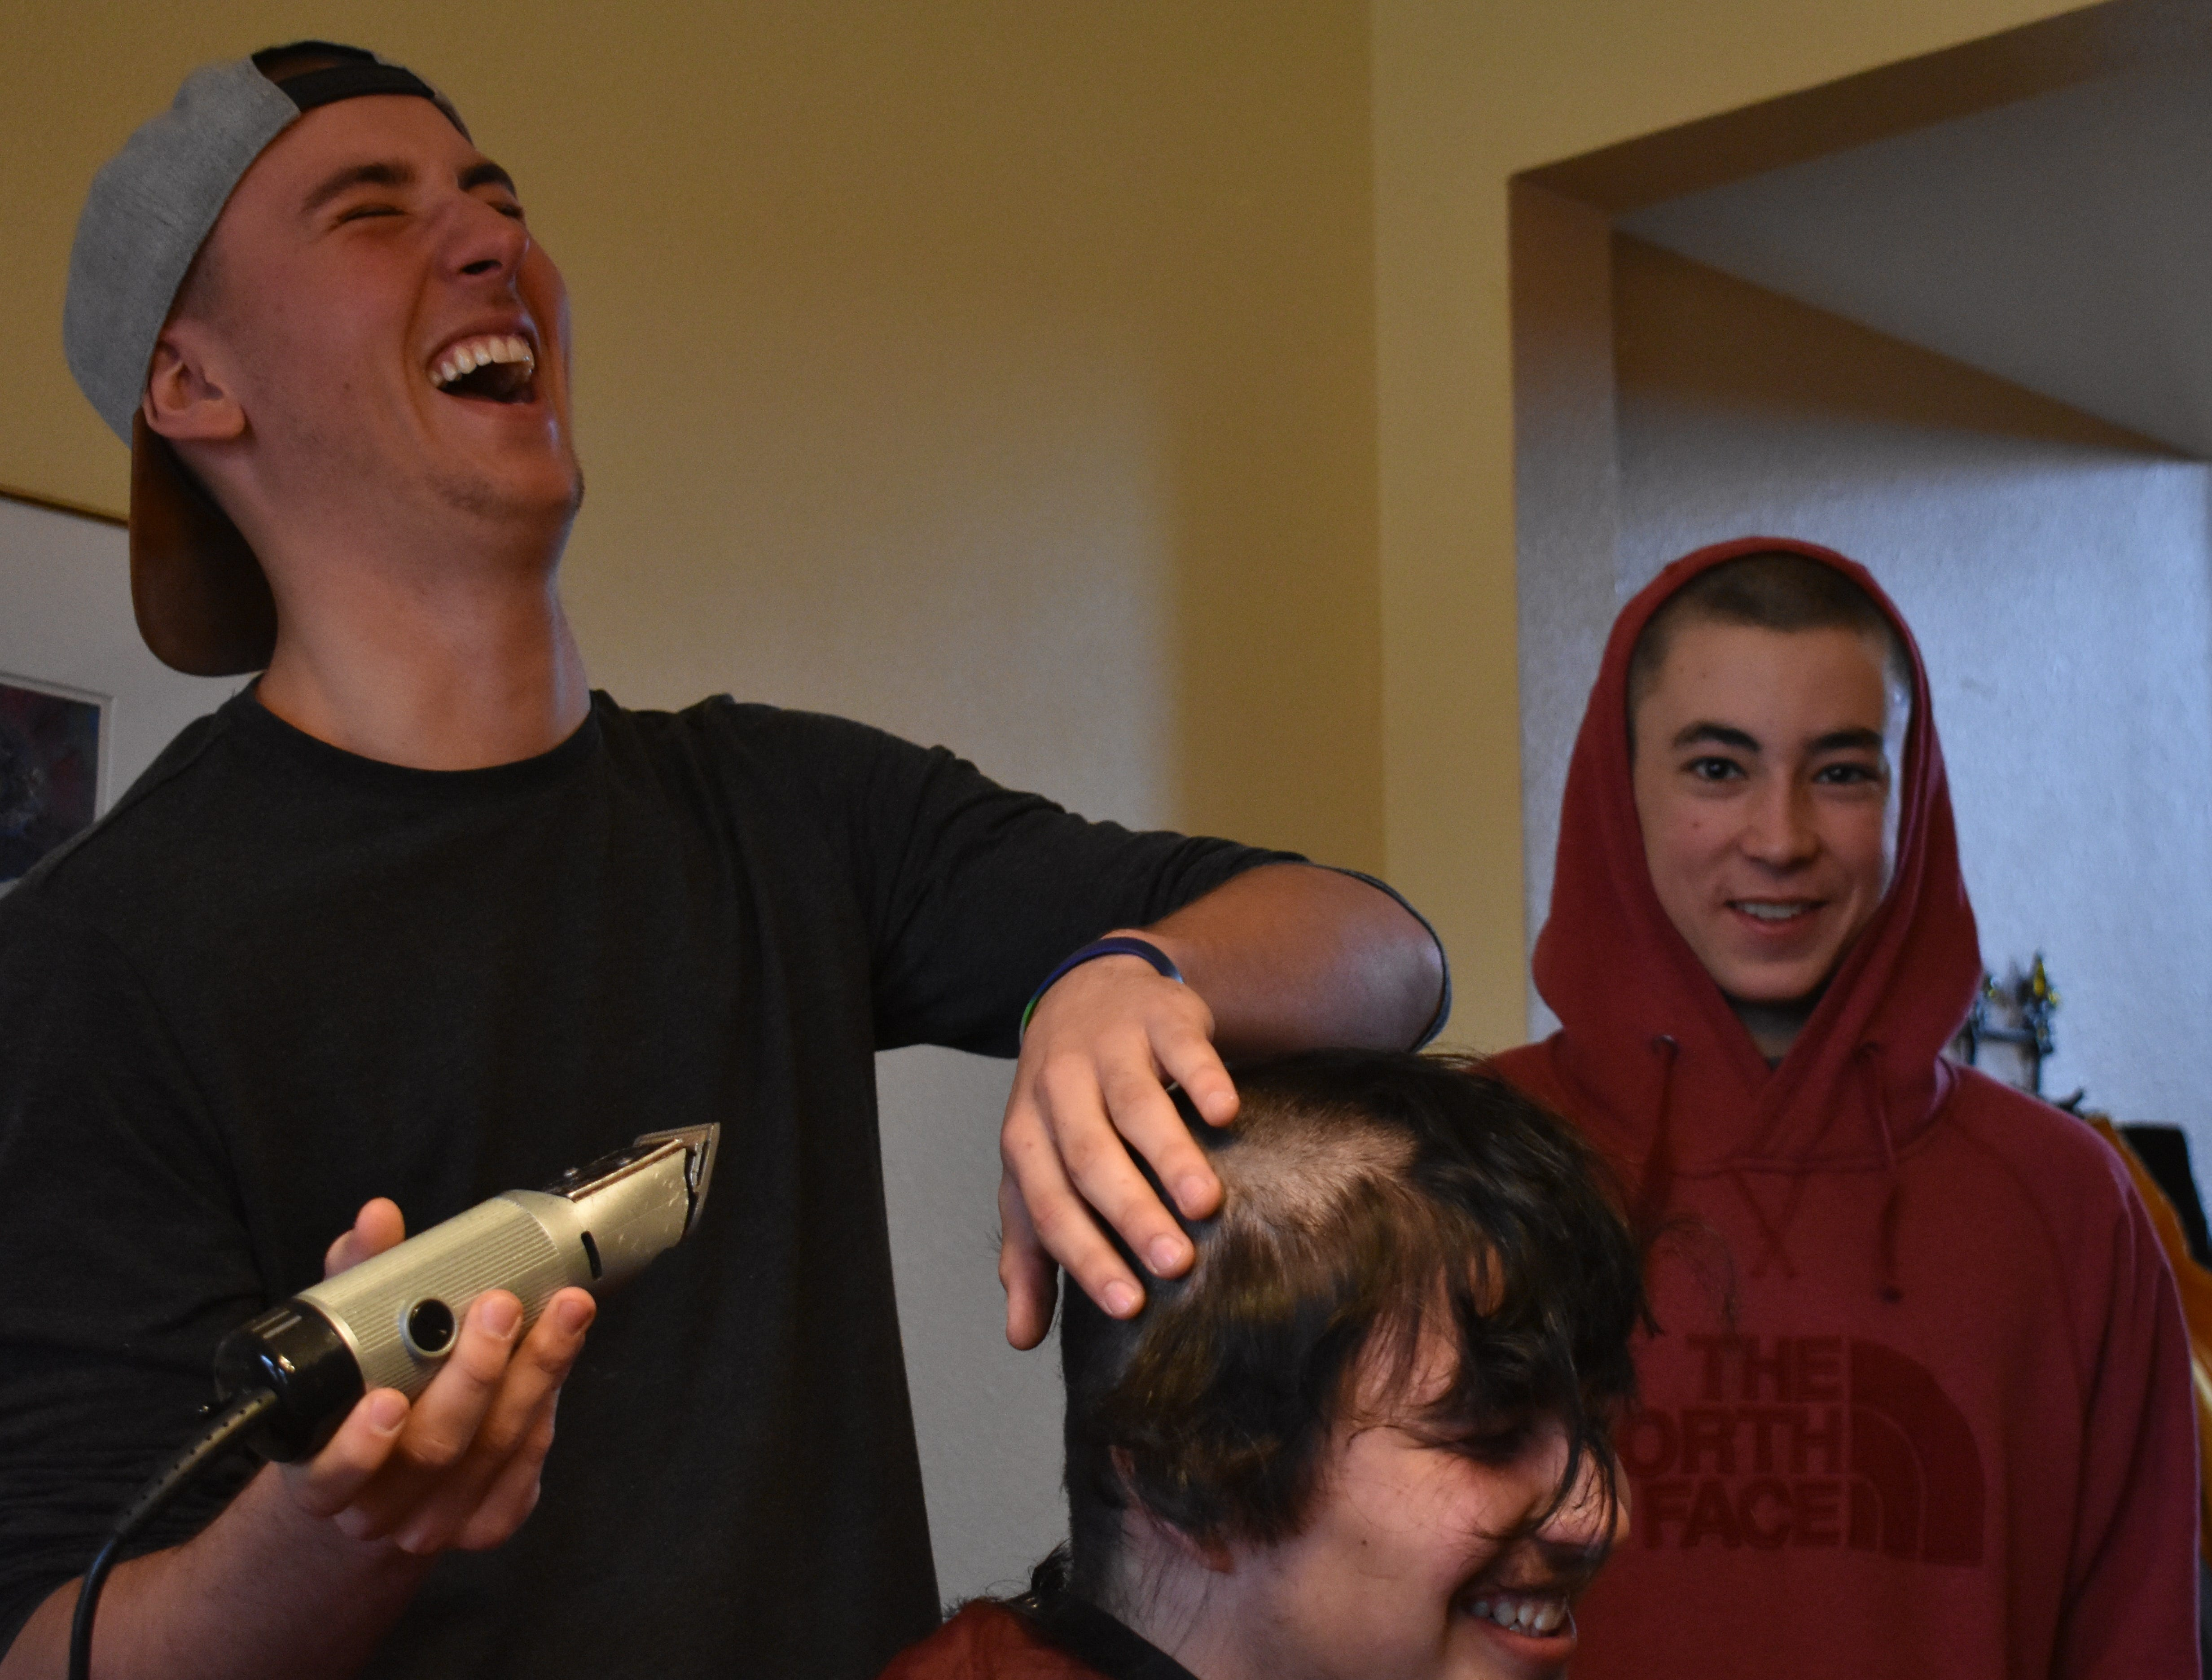 Rocky Mountain basketball player Joe Urynowicz laughs while shaving the head of teammate Jaden Lucero Dec. 31, 2018, in support of teammate Carter Edgerely, who was recently diagnosed with bone cancer.